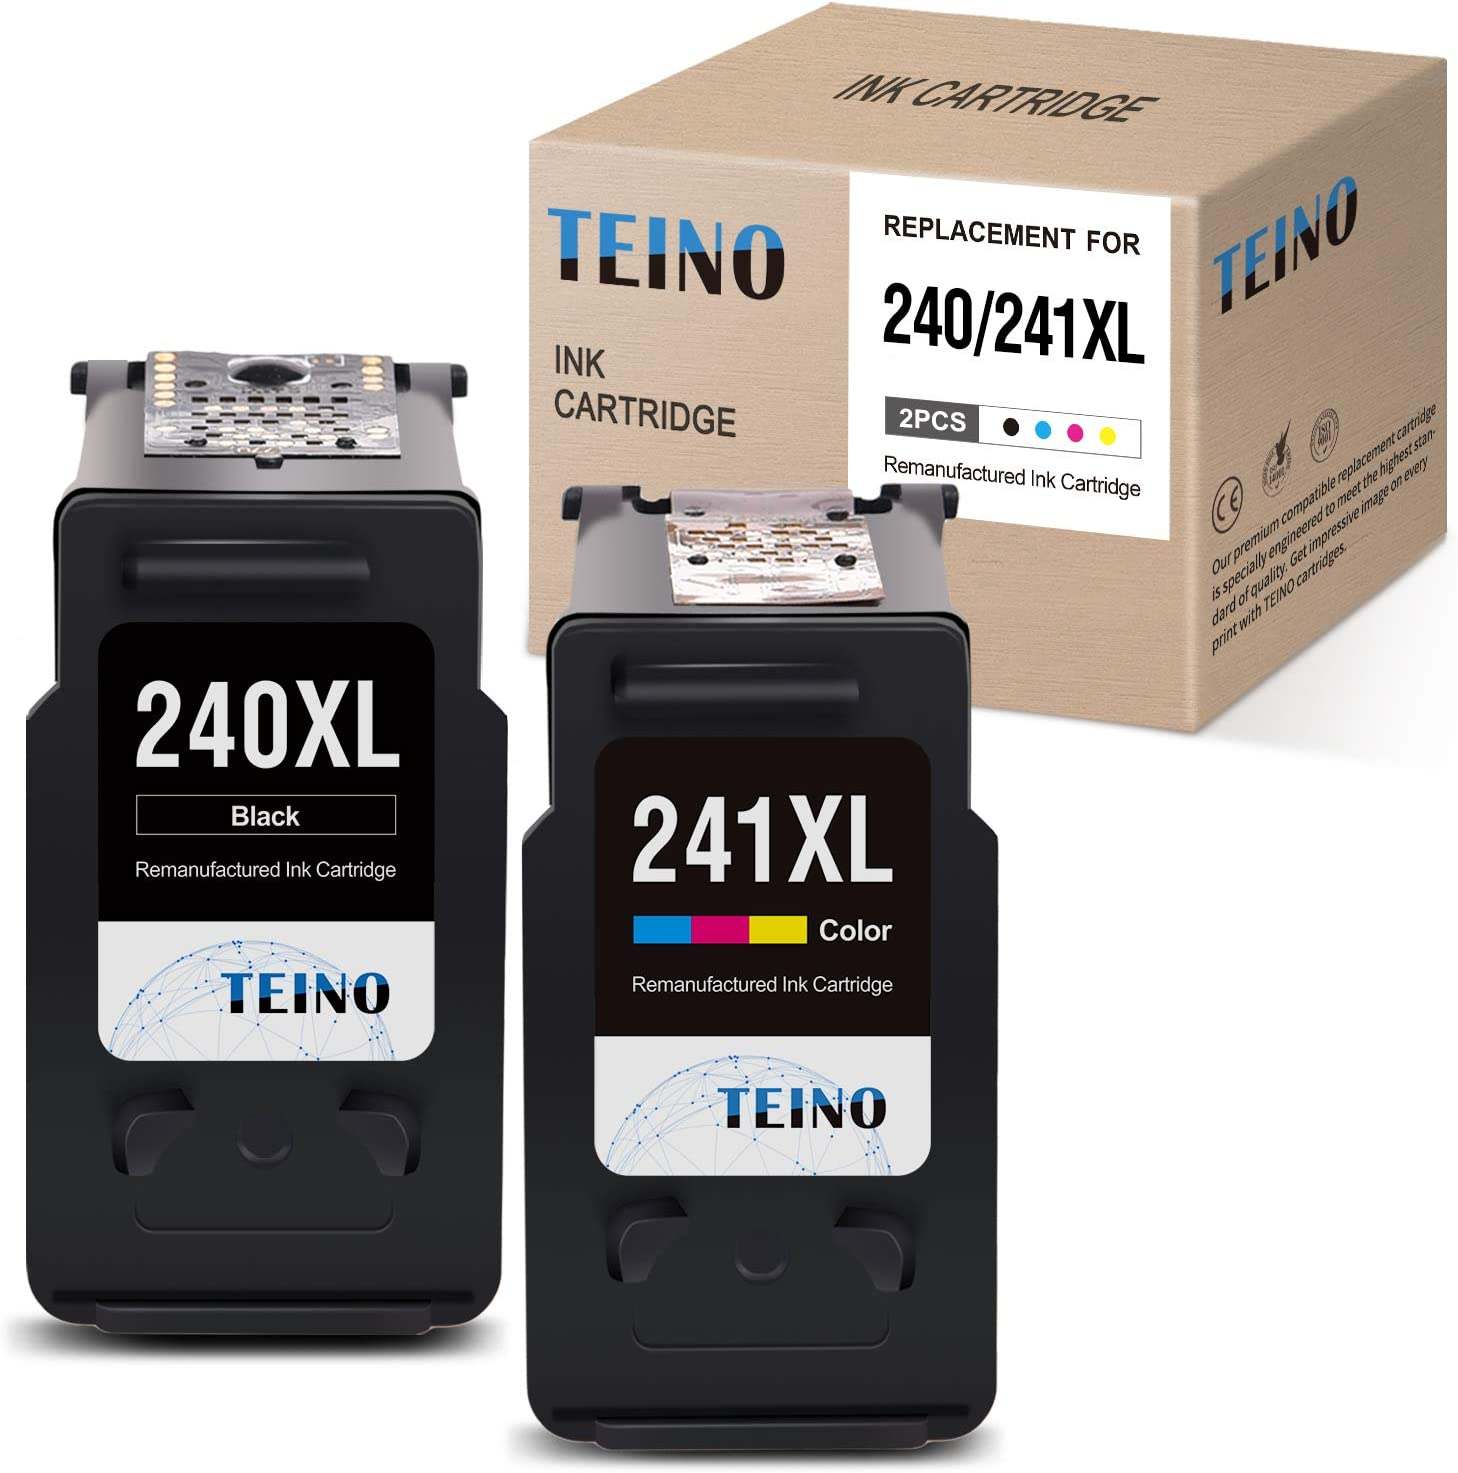 TEINO Remanufactured Ink Cartridges Replacement for Canon PG-240XL 240 XL CL-241XL 241 XL for Canon PIXMA MG3620 TS5120 MX532 MG3520 MX452 MX472 MX432 MG2120 MG3222 (Black, Tri-Color, 2 Pack)